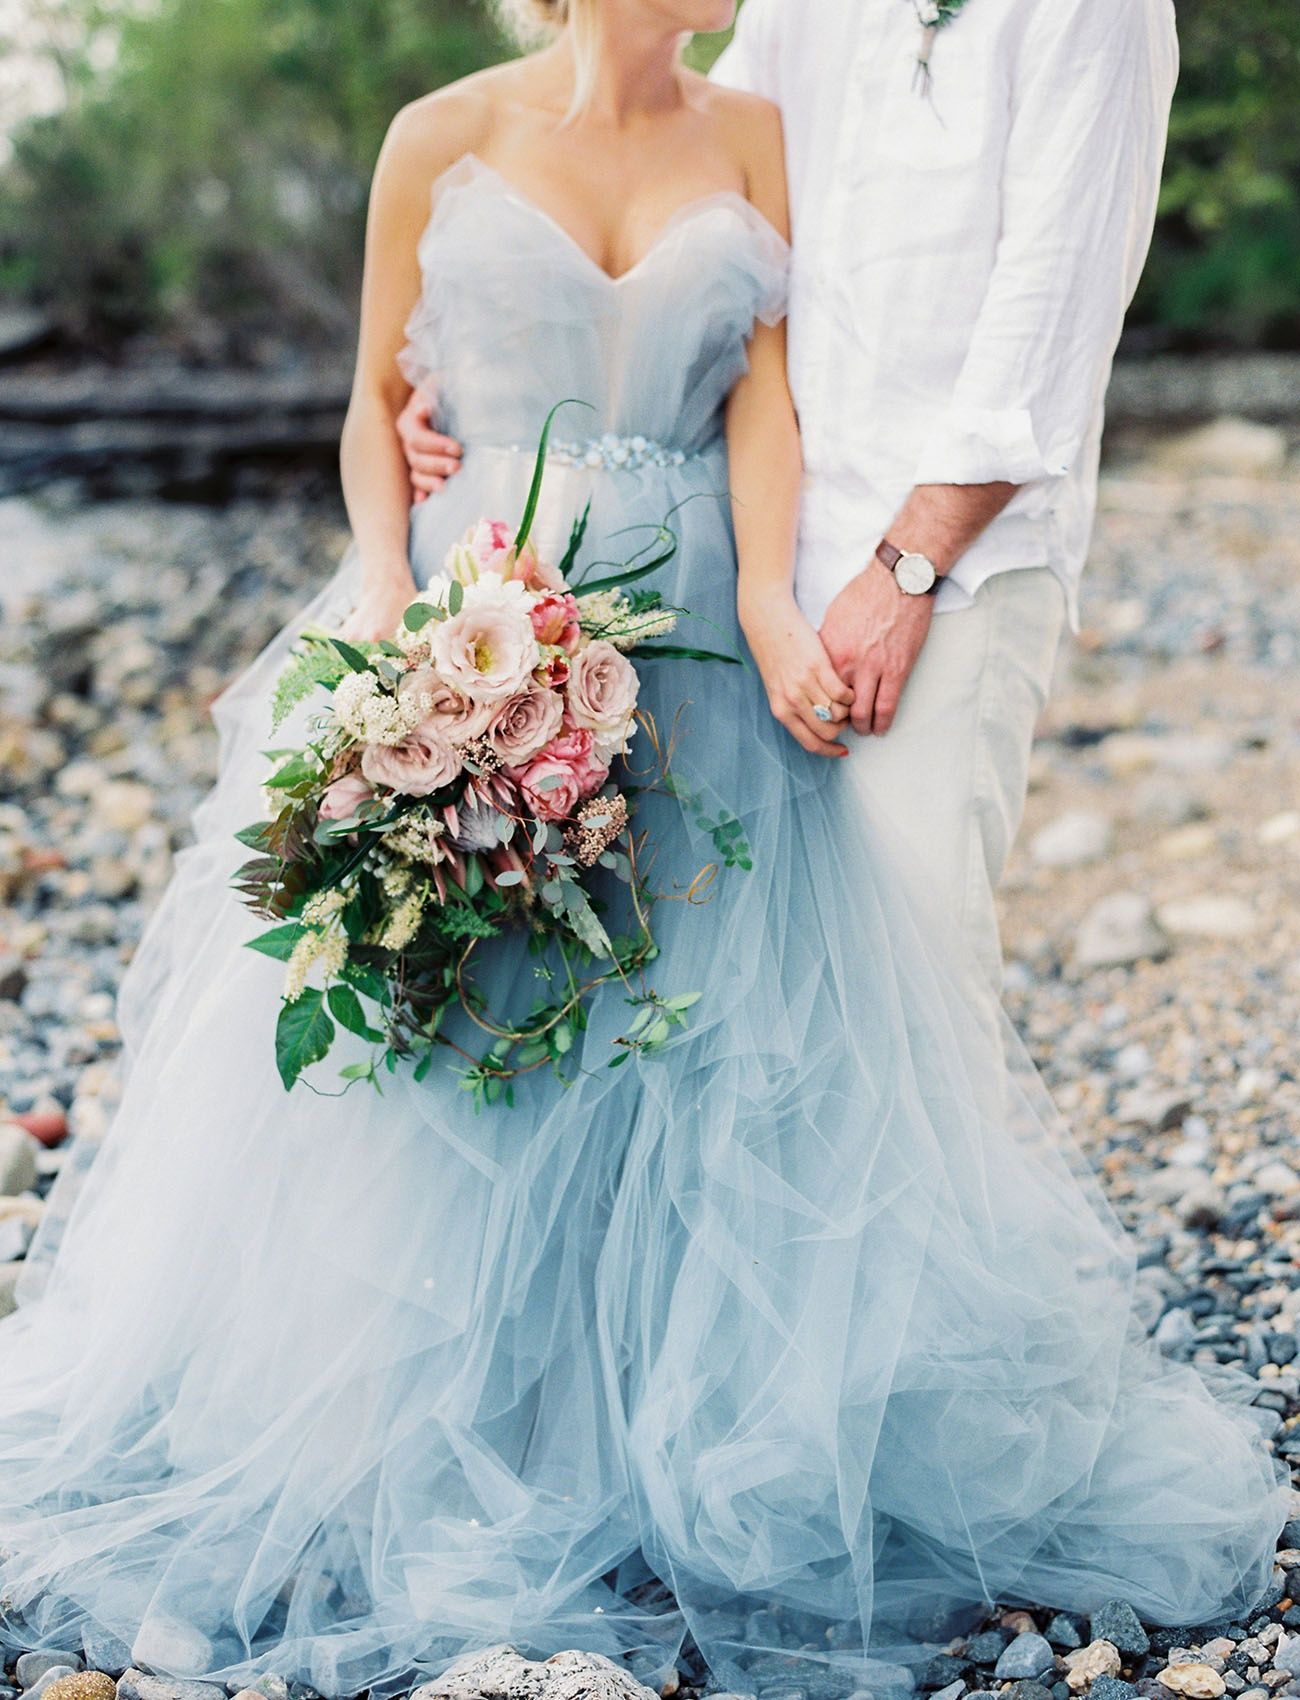 The latest wedding trend stunning serenity blue wedding dresses